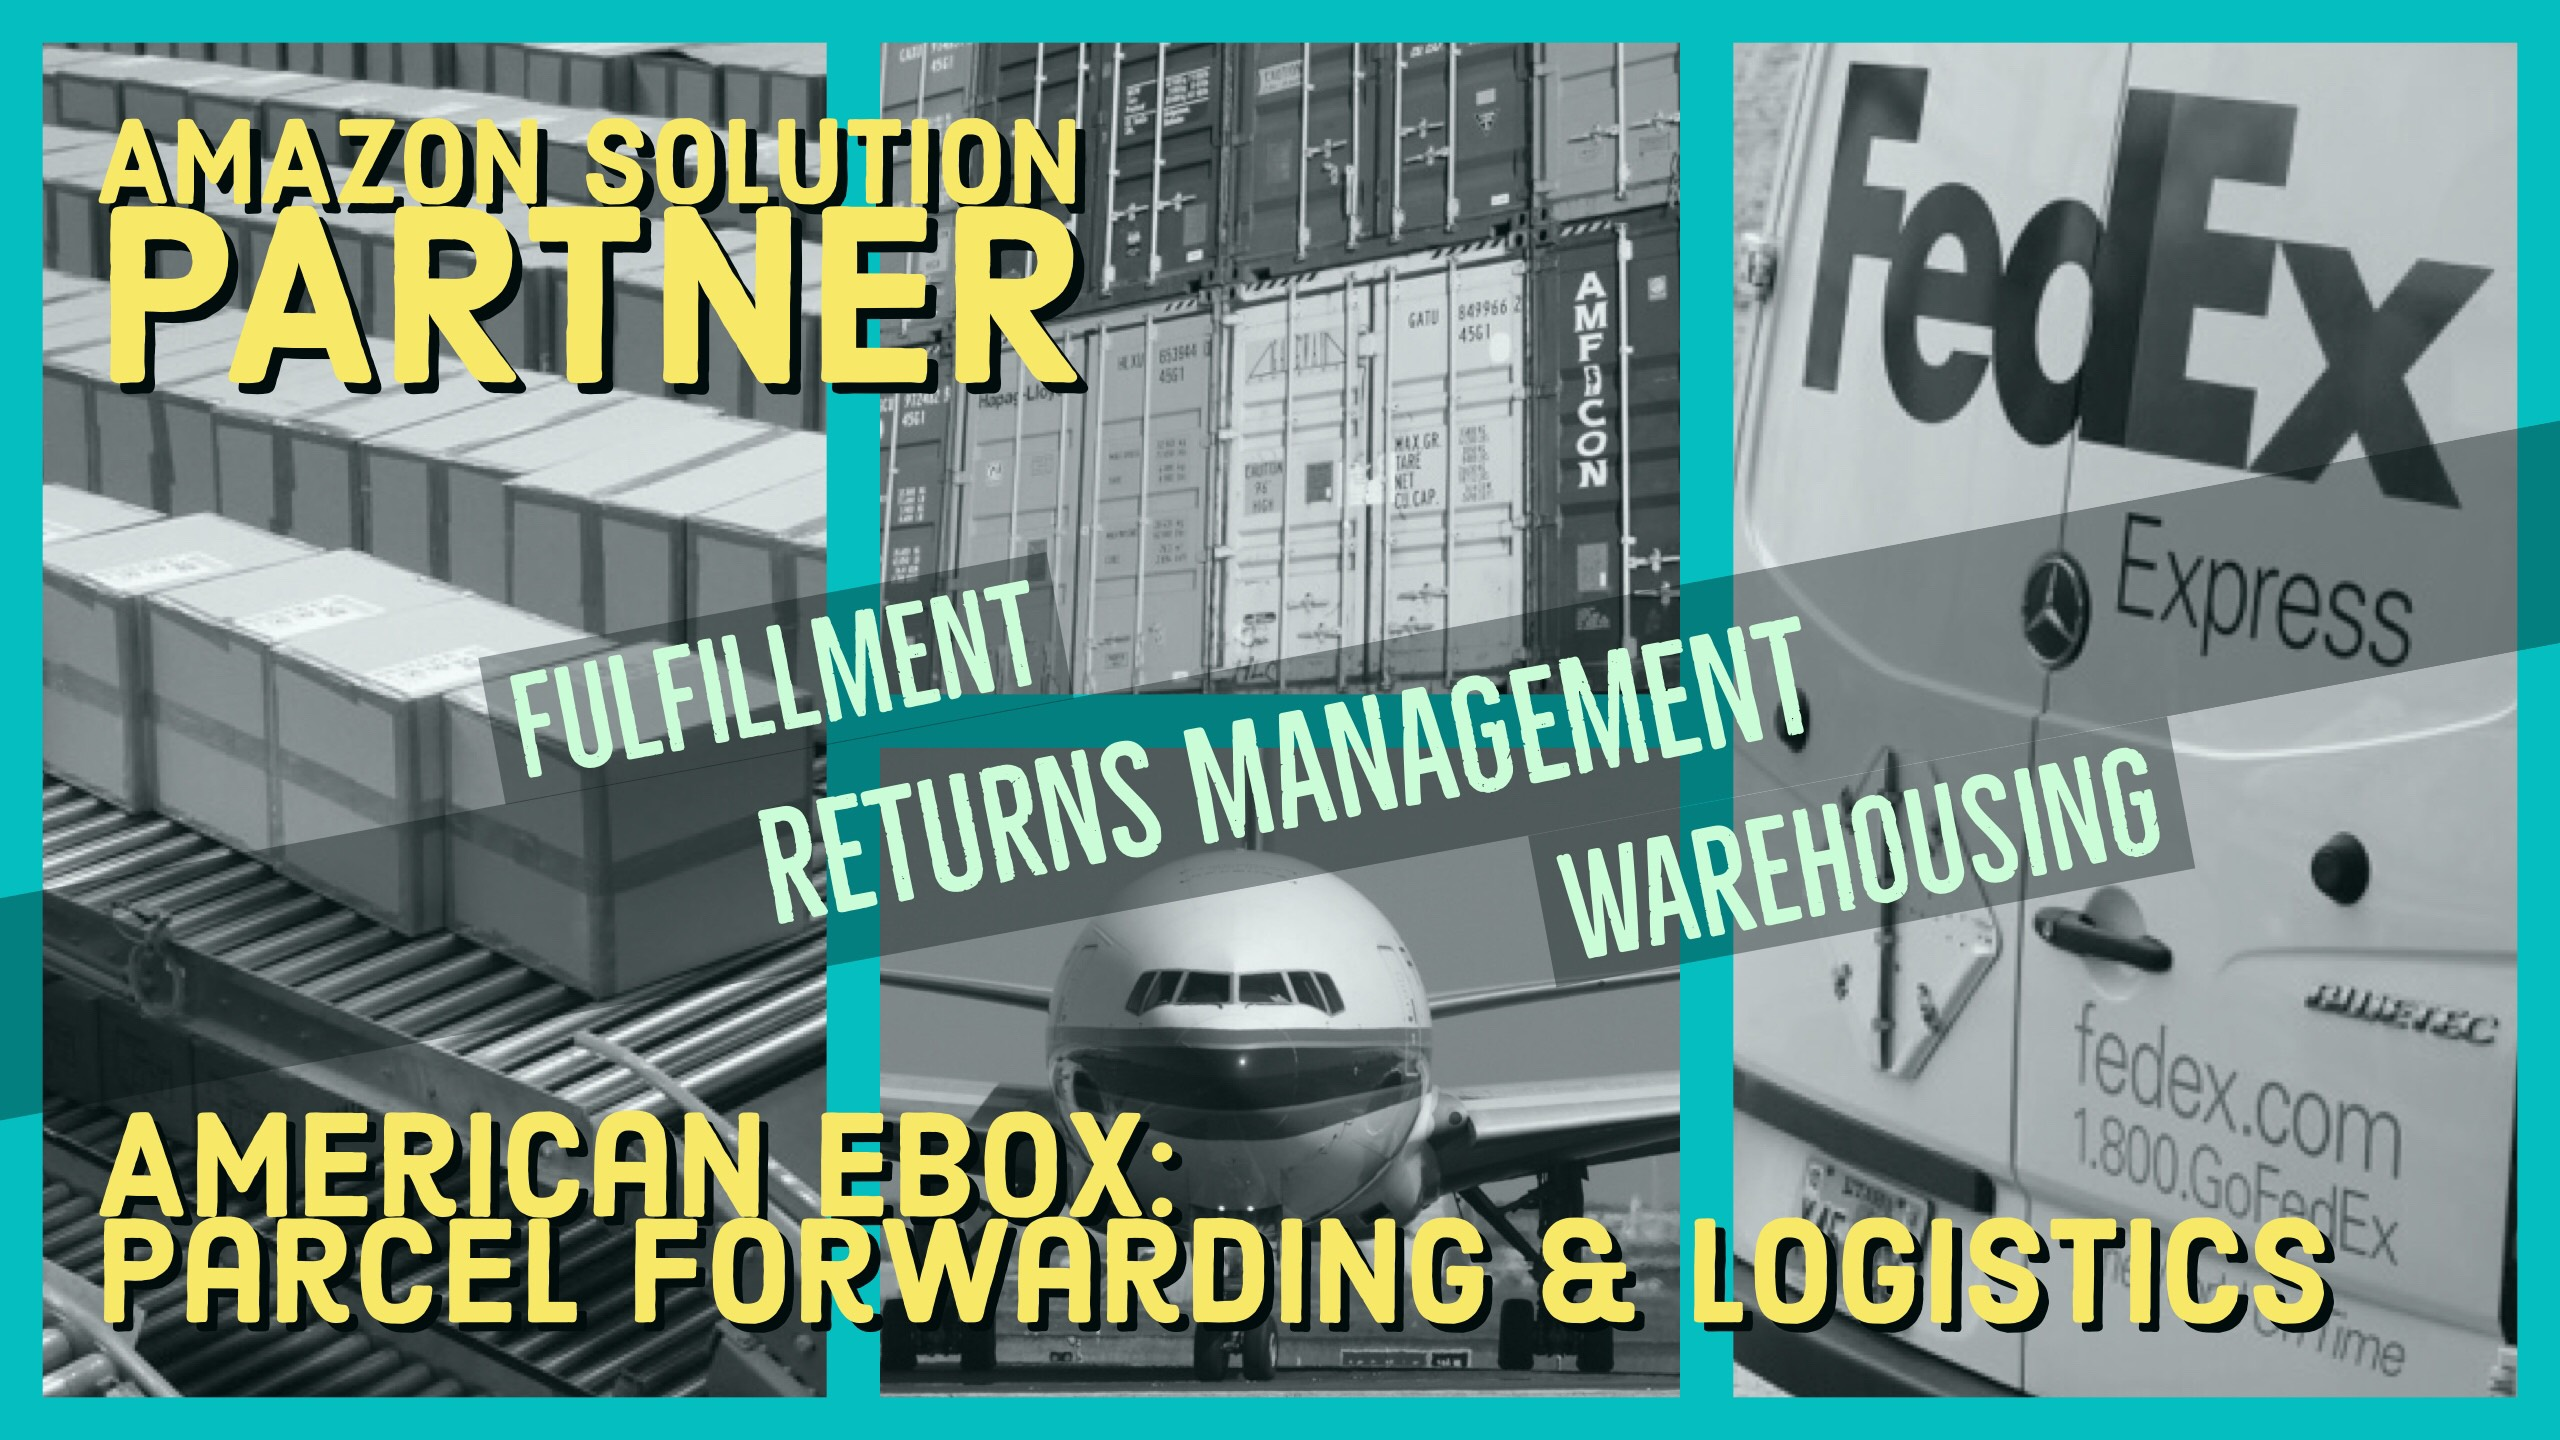 Authorized Amazon Solution Provider - Managing Returns & Fulfillment